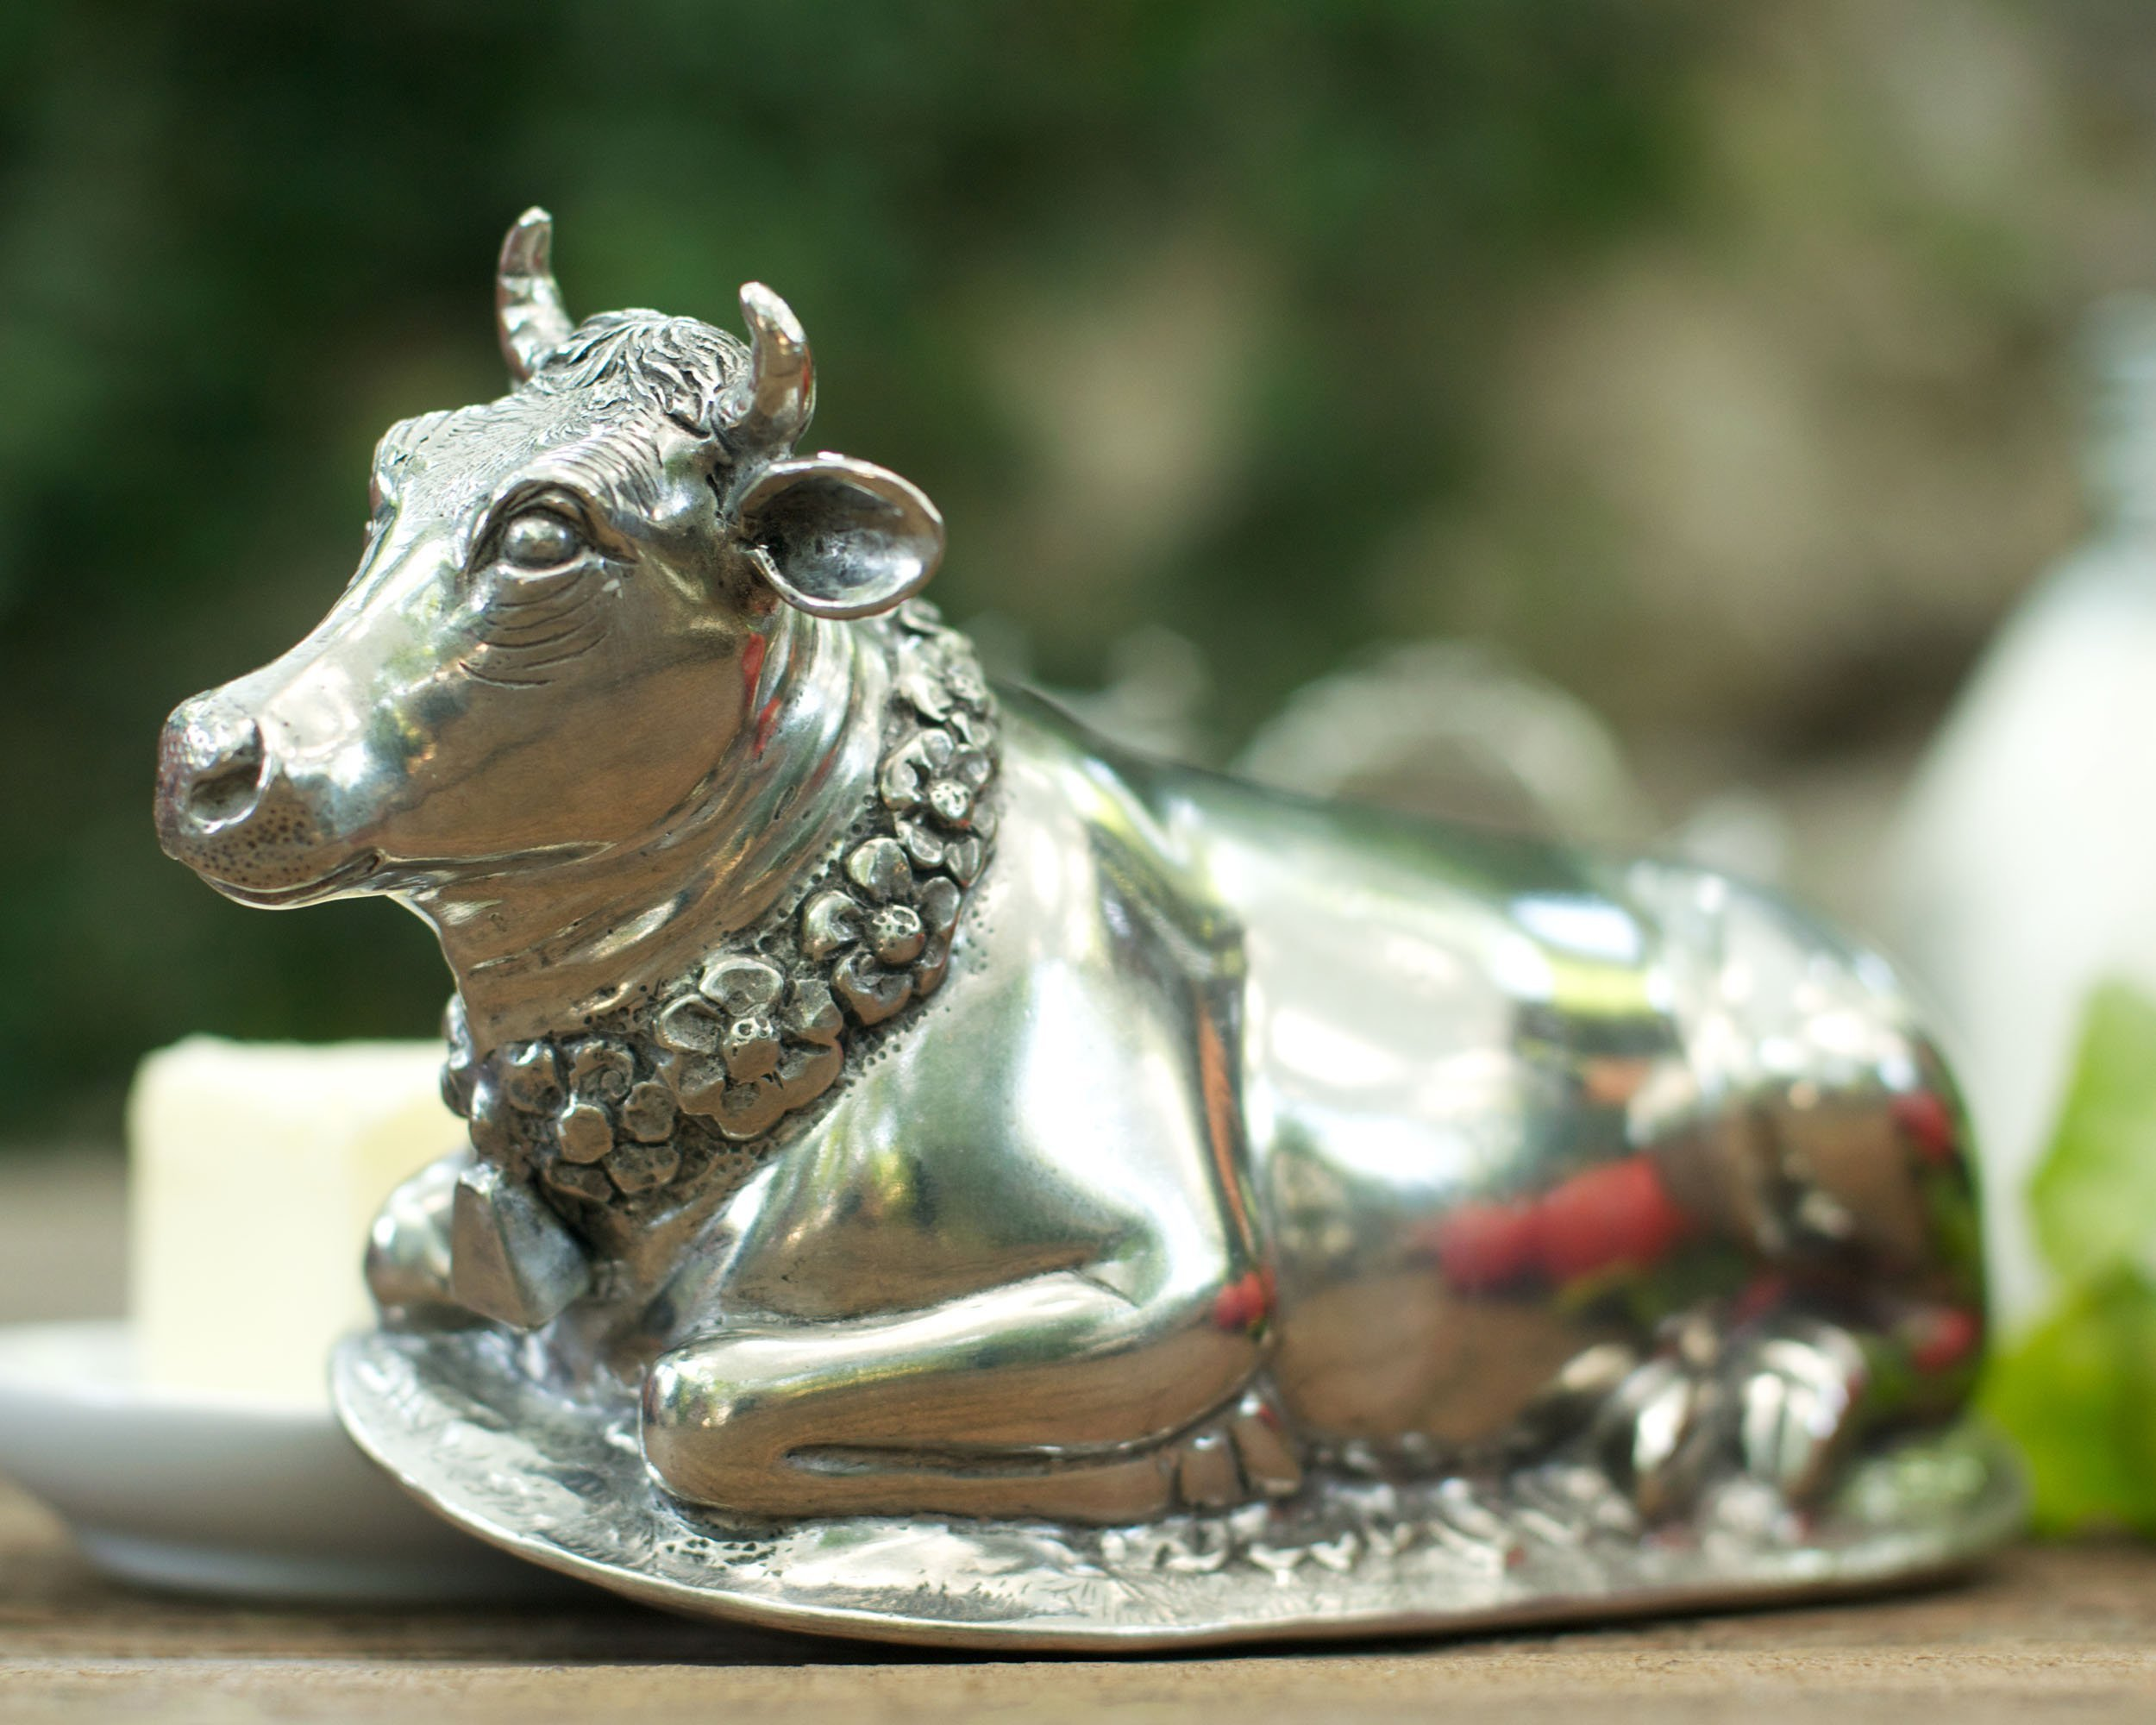 Vagabond House Pewter Metal Mabel the Cow Butter Dish lid with Stoneware Tray Base 8.5'' Long